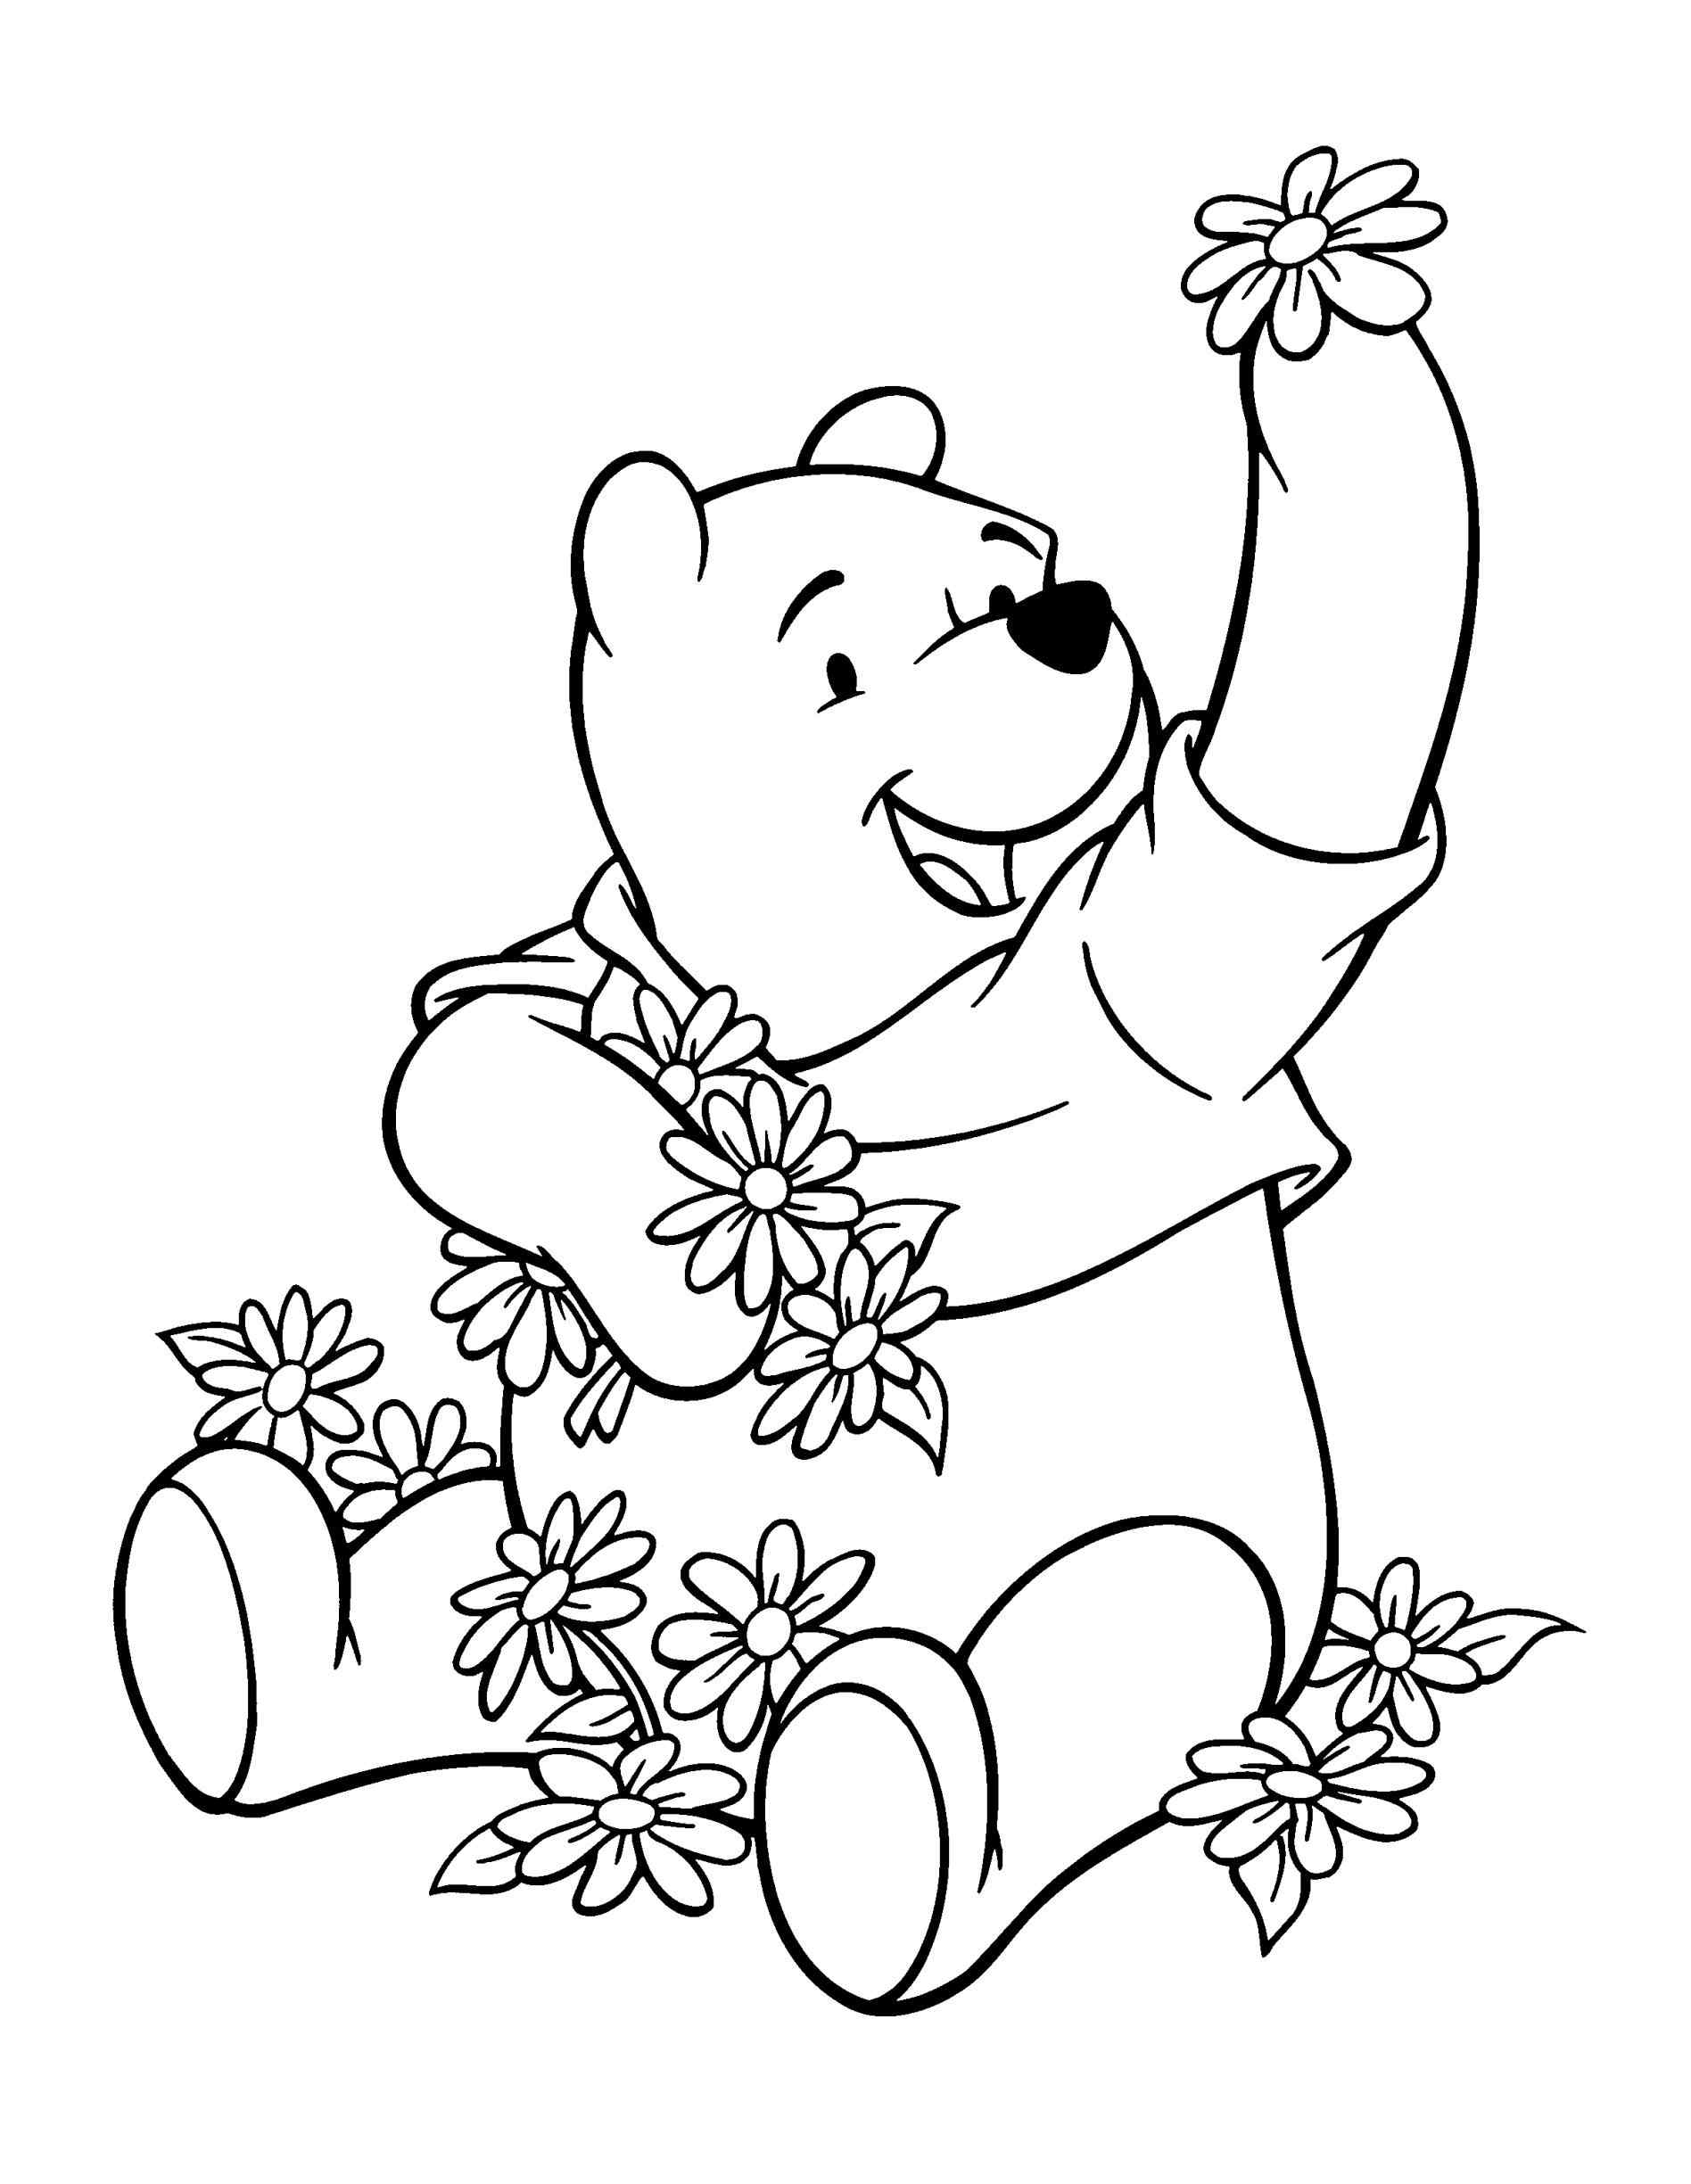 St Patrick Day Coloring Pages Disney At Getcolorings